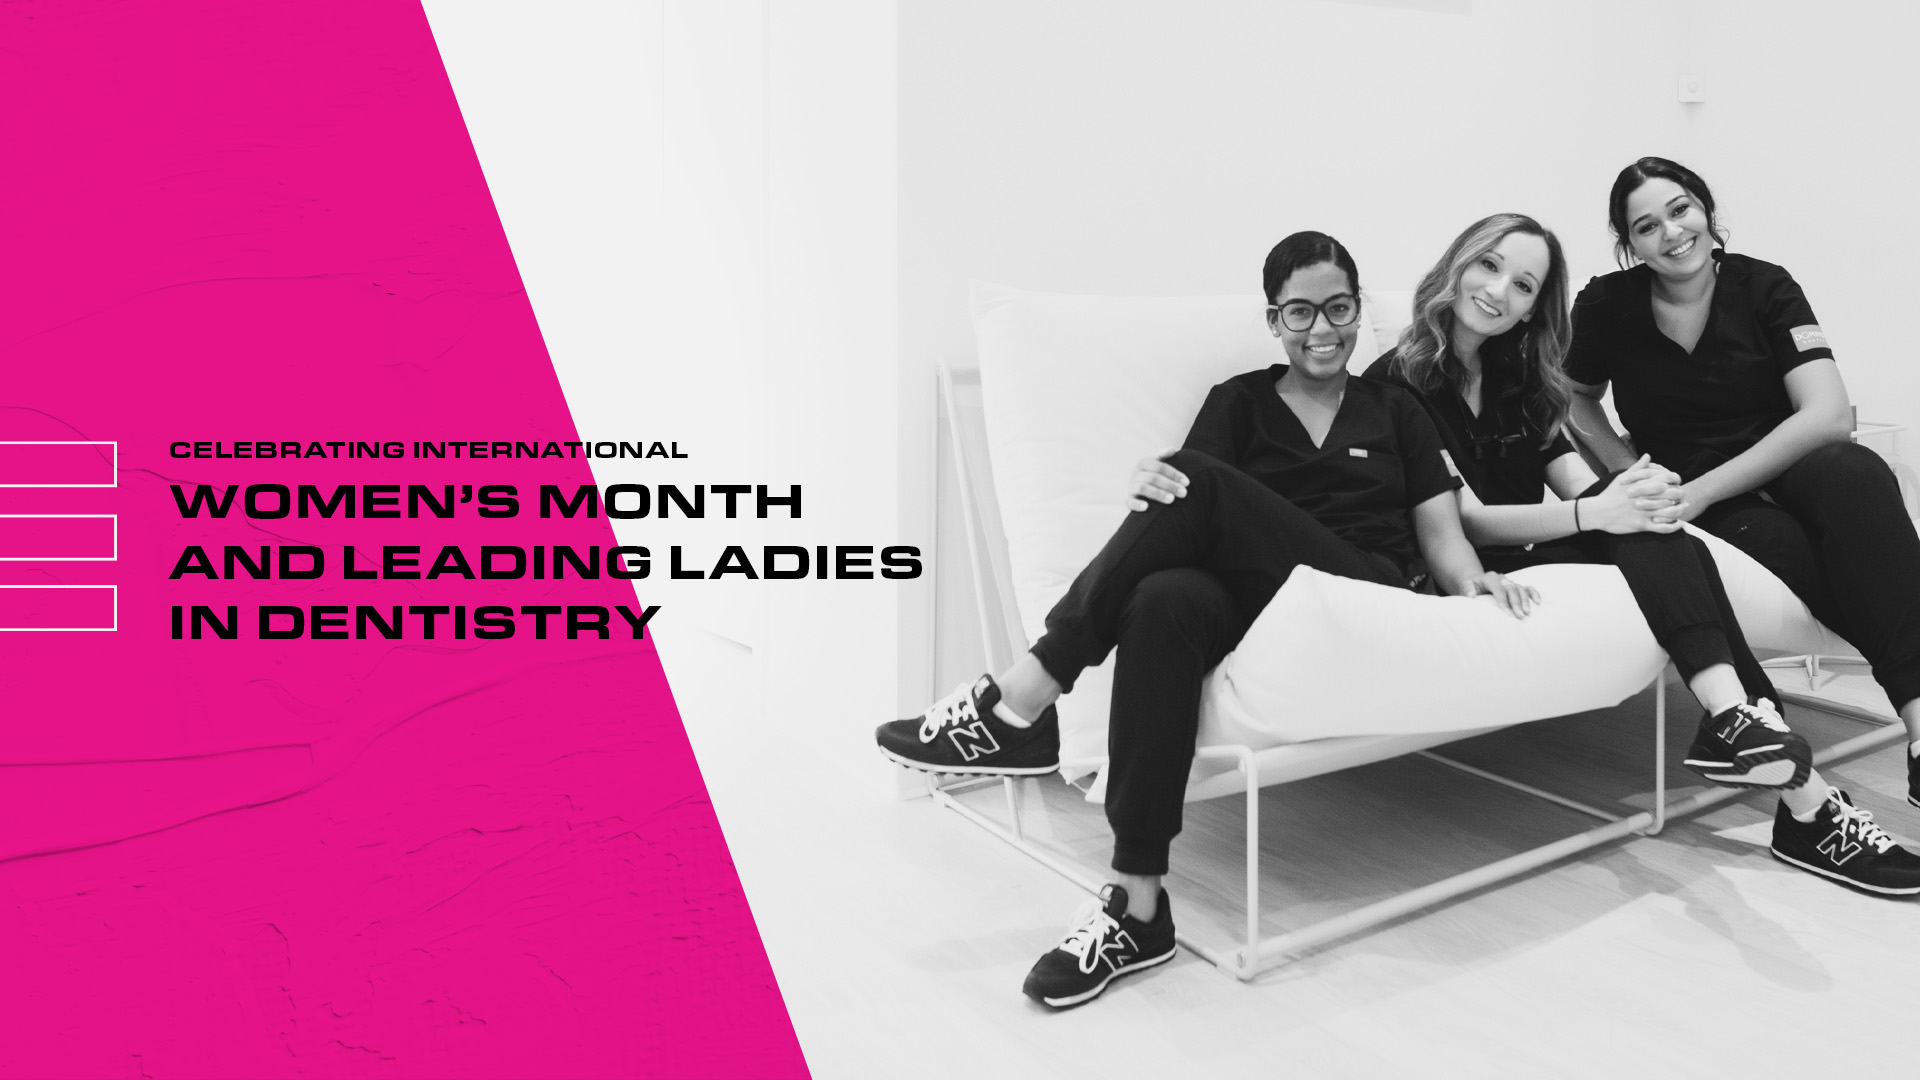 Celebrating International Women's Month and Leading Ladies in Dentistry